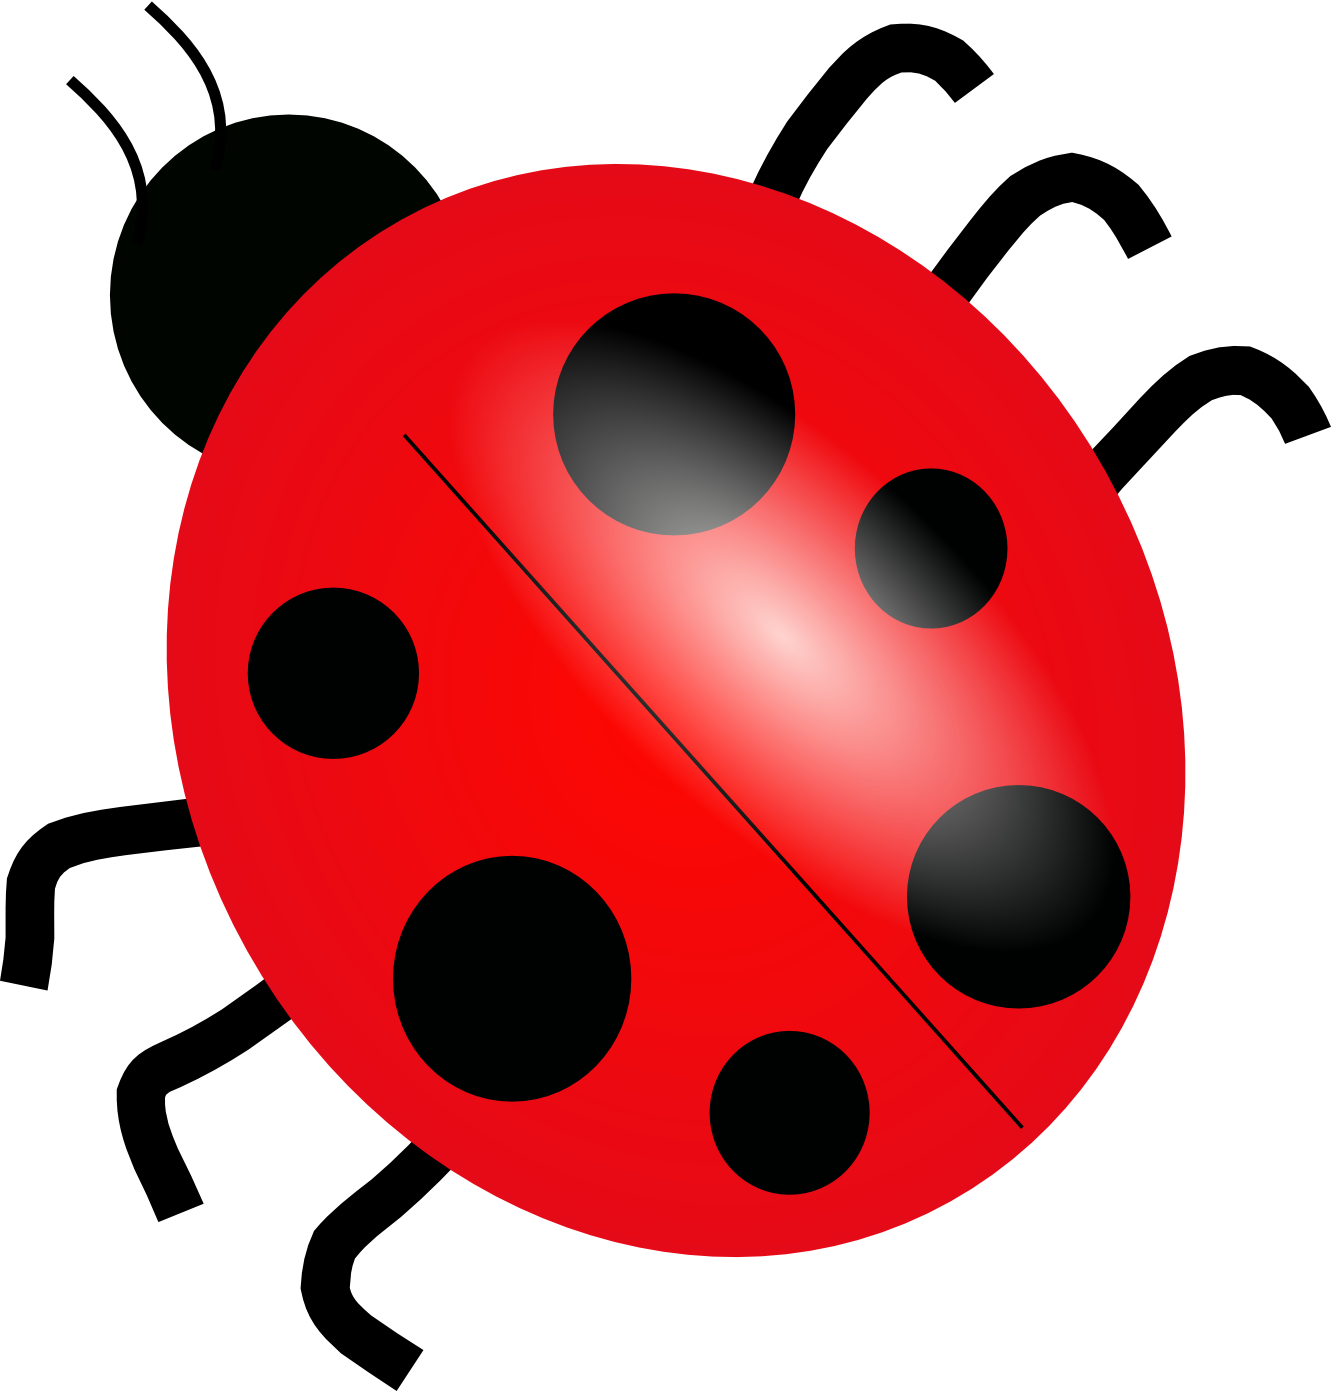 Ladybug clipart one object. Ladybugs png transparent images